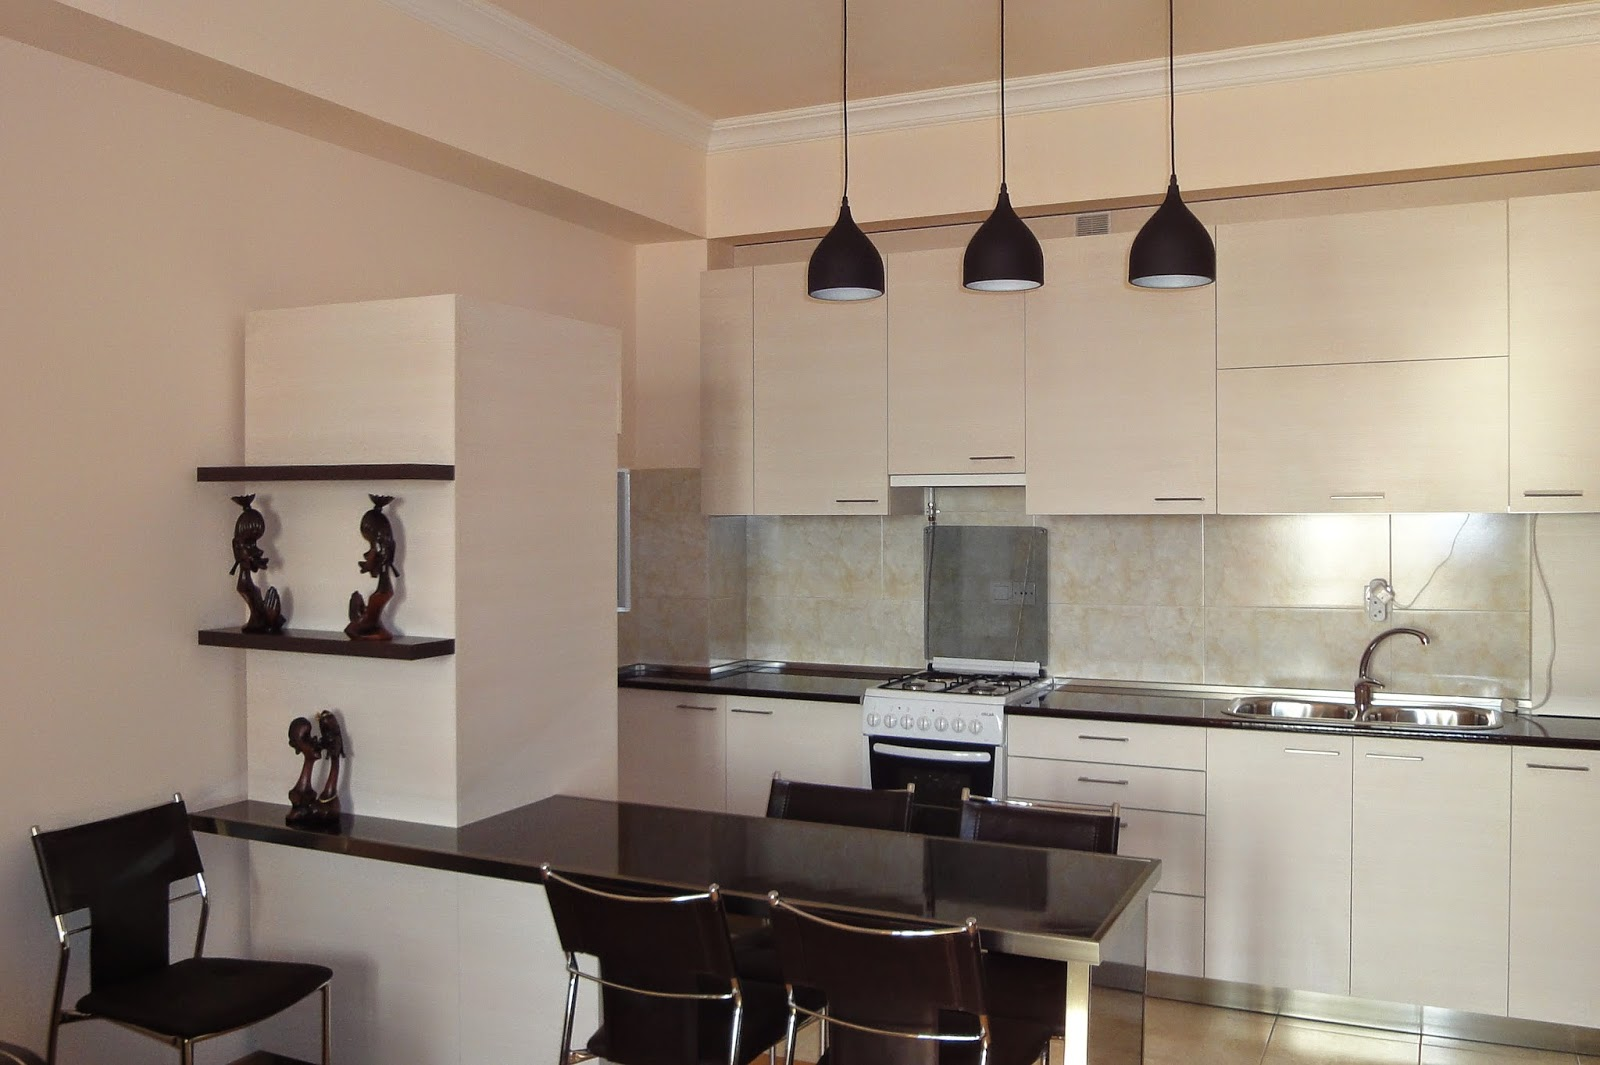 Furnished Two Bedroom Apartment for Rent in Yerevan